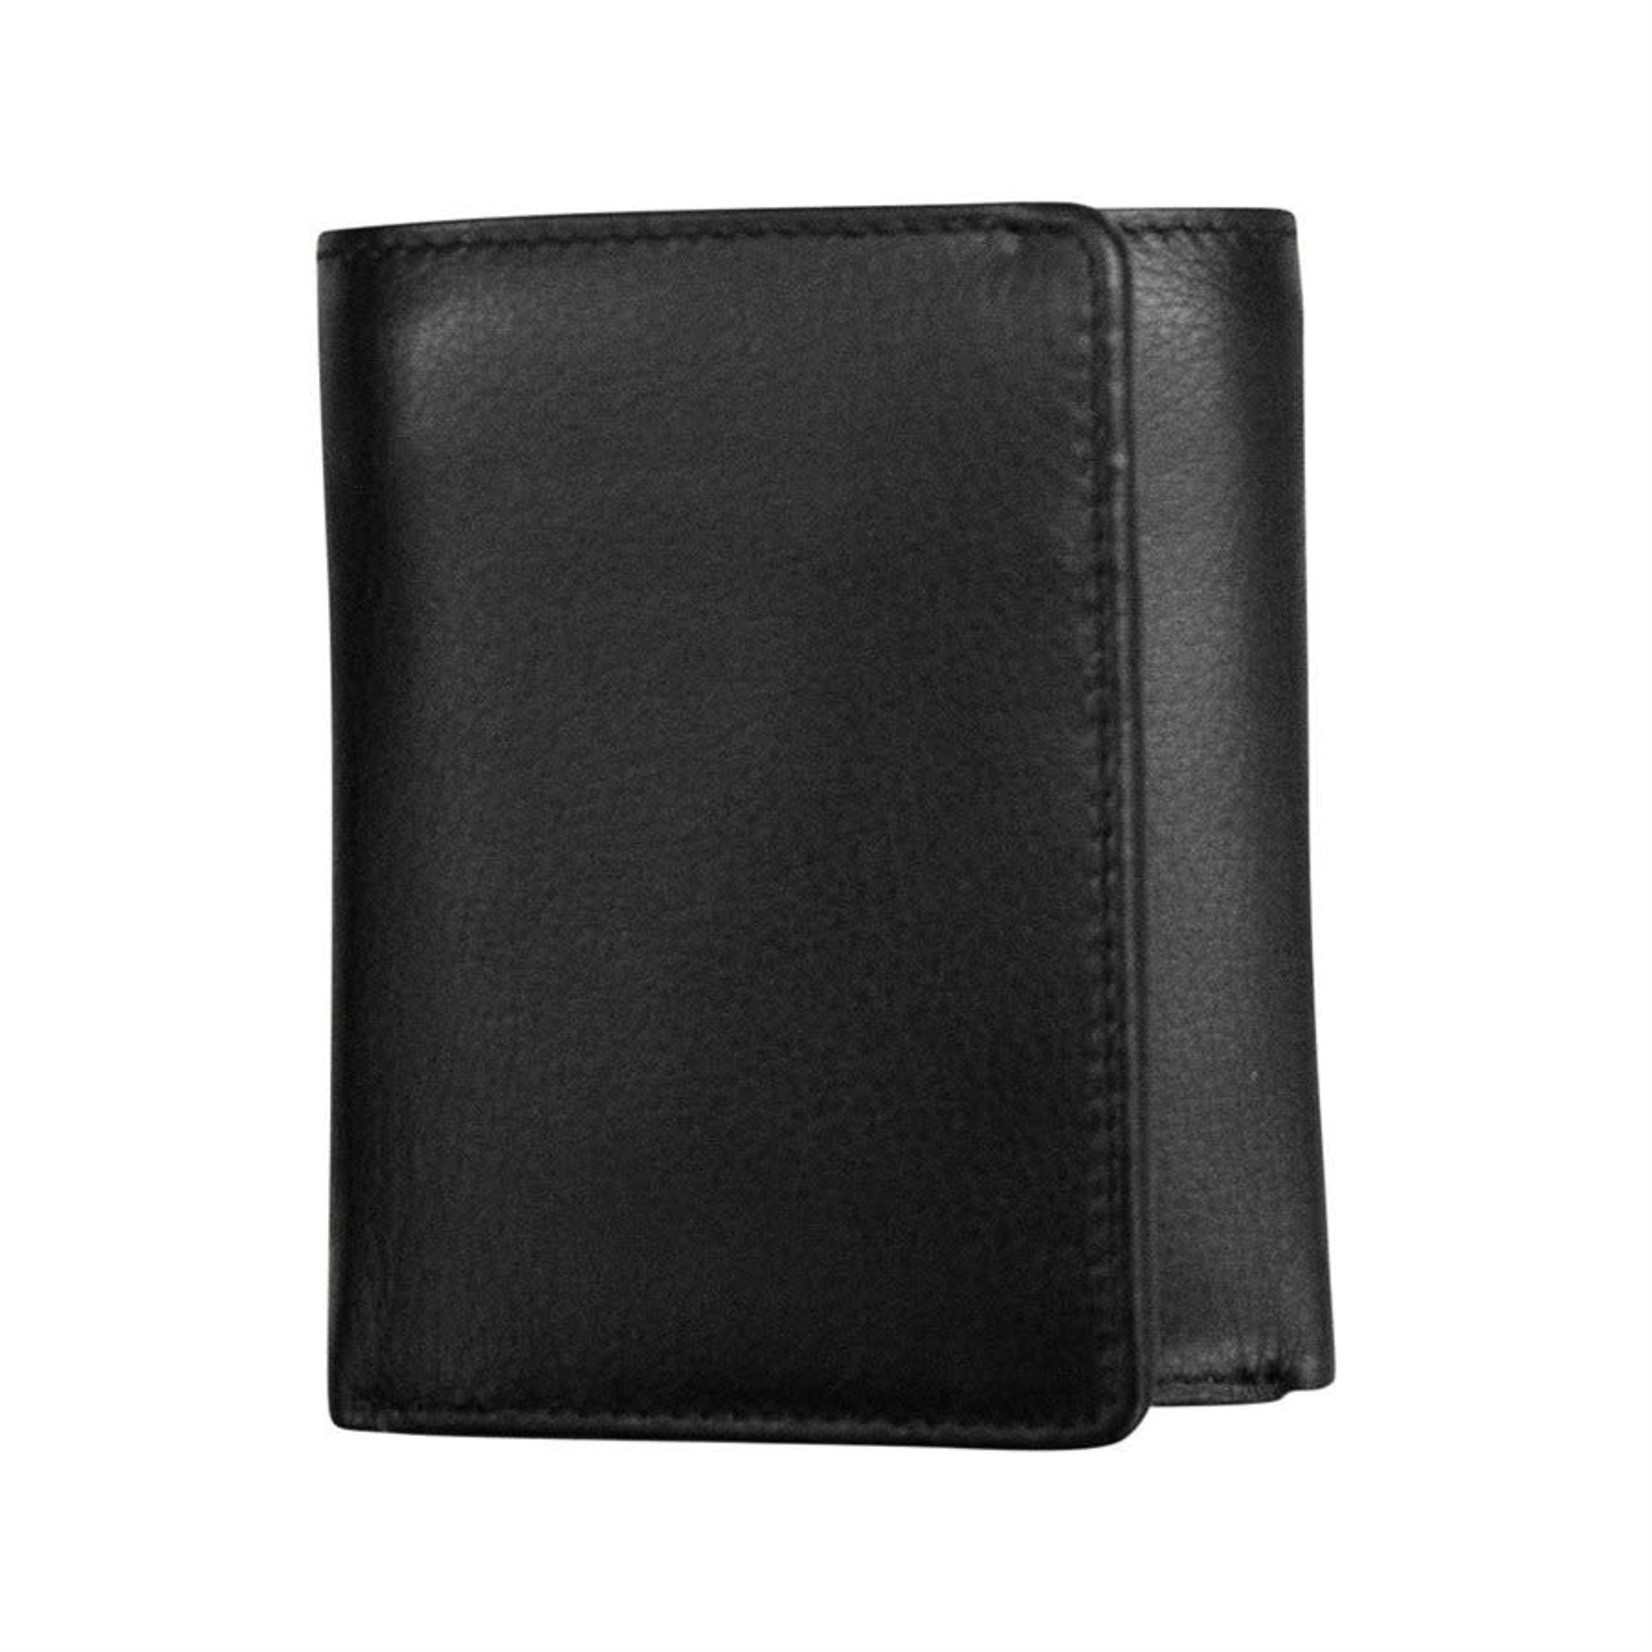 Leather Handbags and Accessories 7733 Black - RFID TriFold Wallet